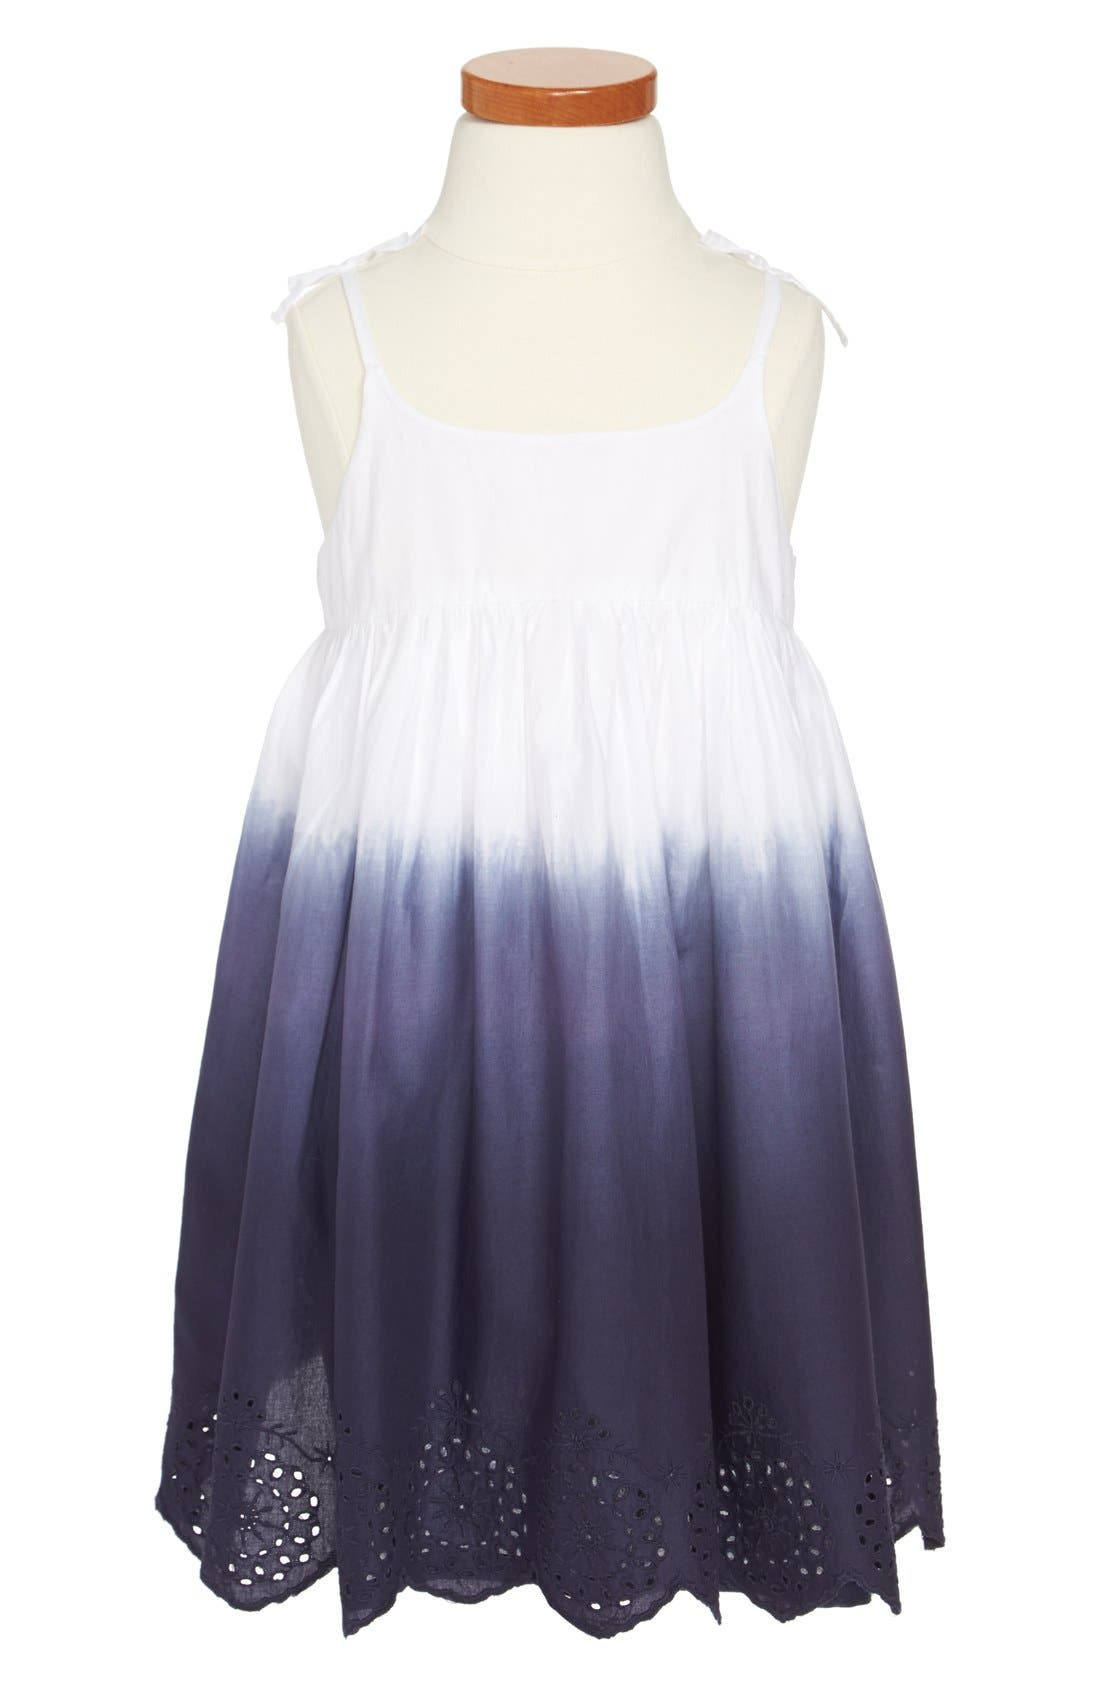 Alternate Image 1 Selected - Tucker + Tate 'Maya' Sleeveless Dress (Toddler Girls, Little Girls & Big Girls)